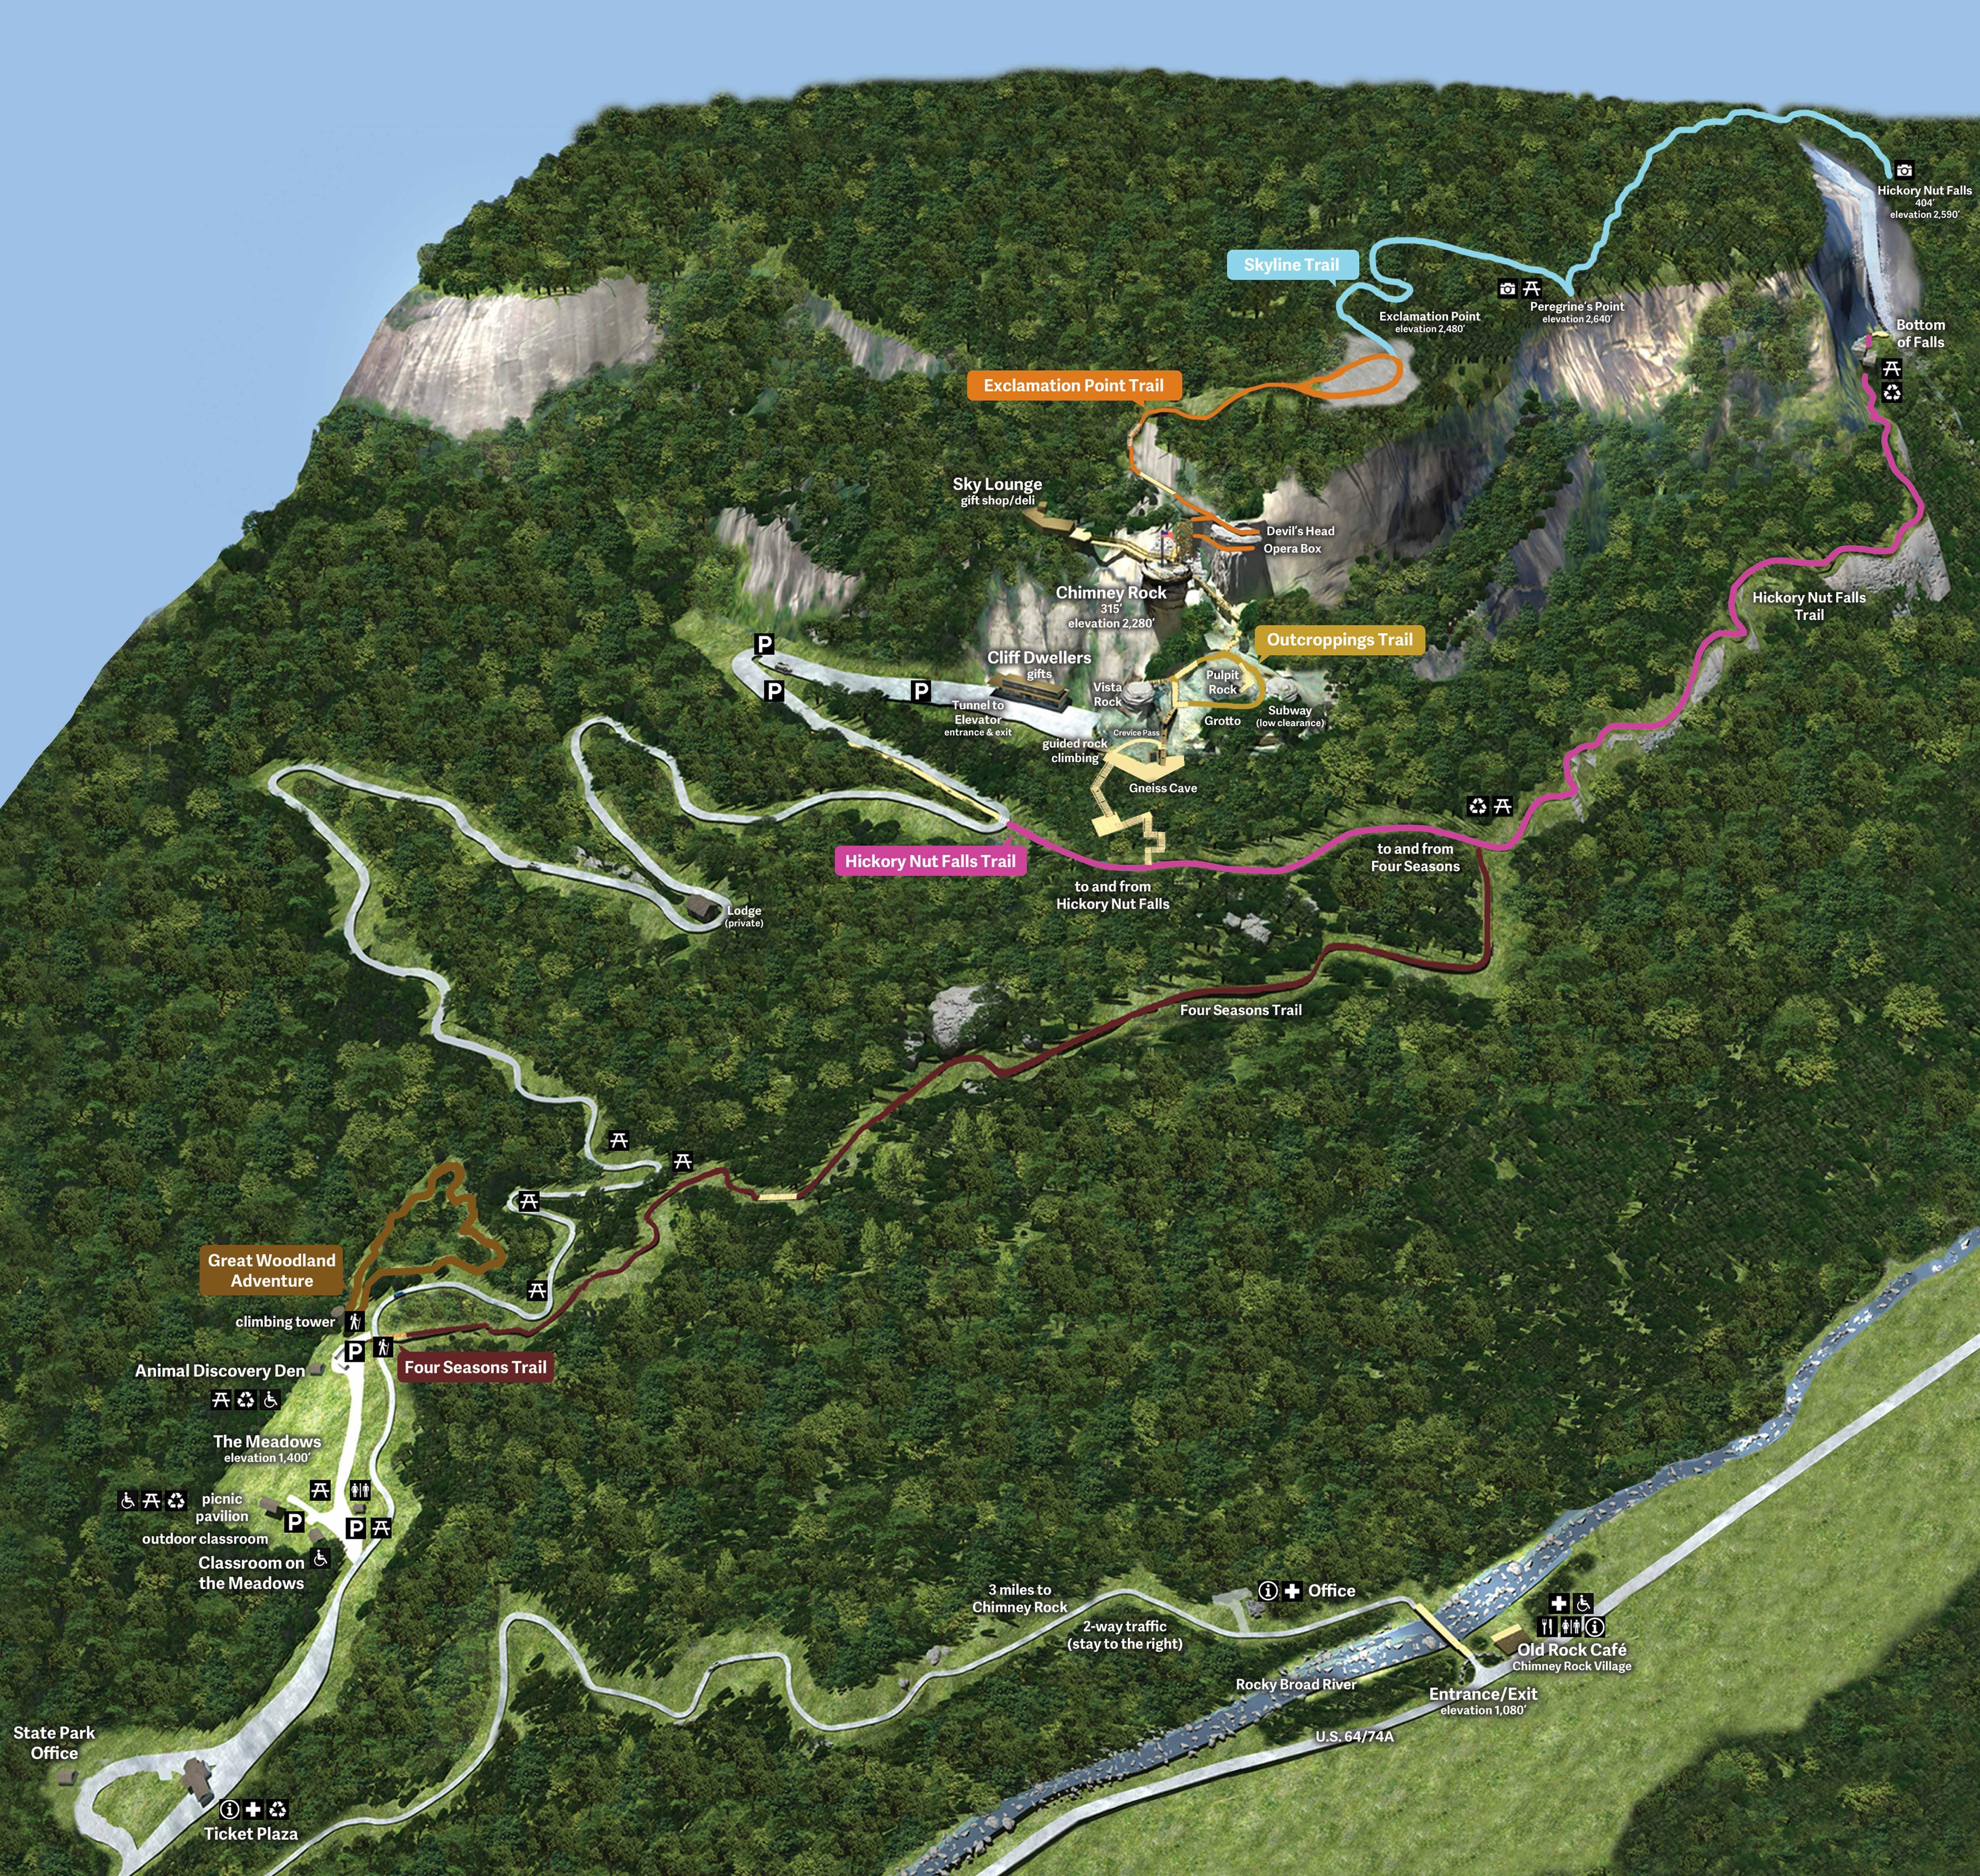 State Park Nc Map.Last Of The Mohicans Waterfall Hickory Nut Falls Trail Map Chimney